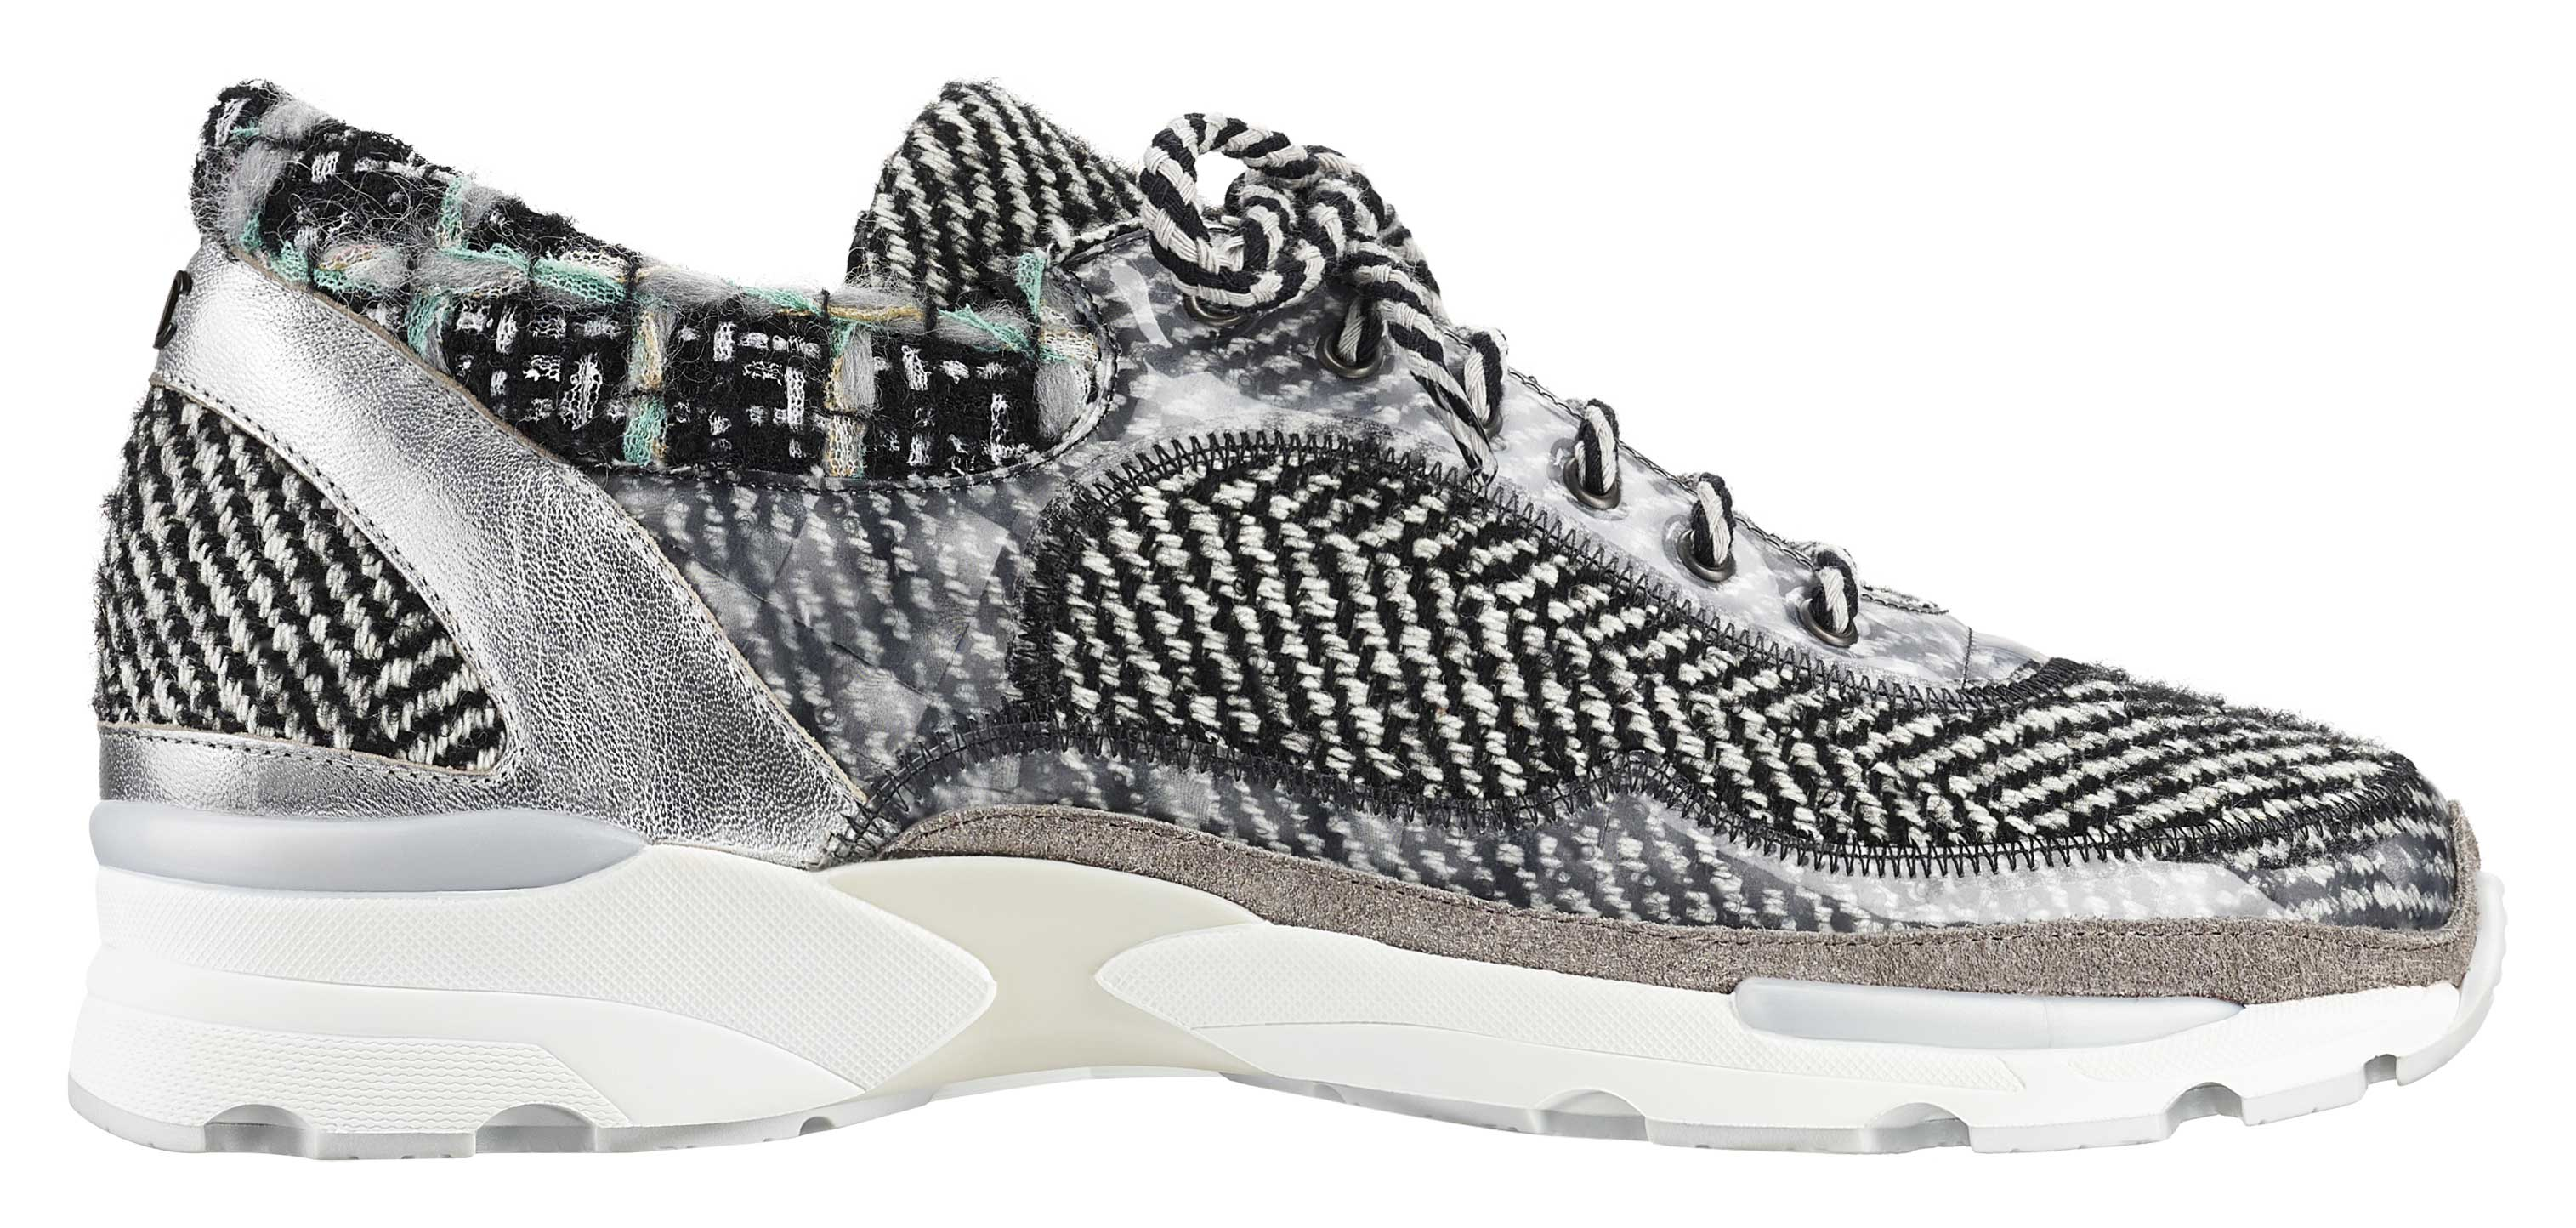 Grey-tweed,-leather,-PVC-and-rubber-sneaker-Basket-en-tweed-gris,-cuir,-PVC-et-caoutchouc